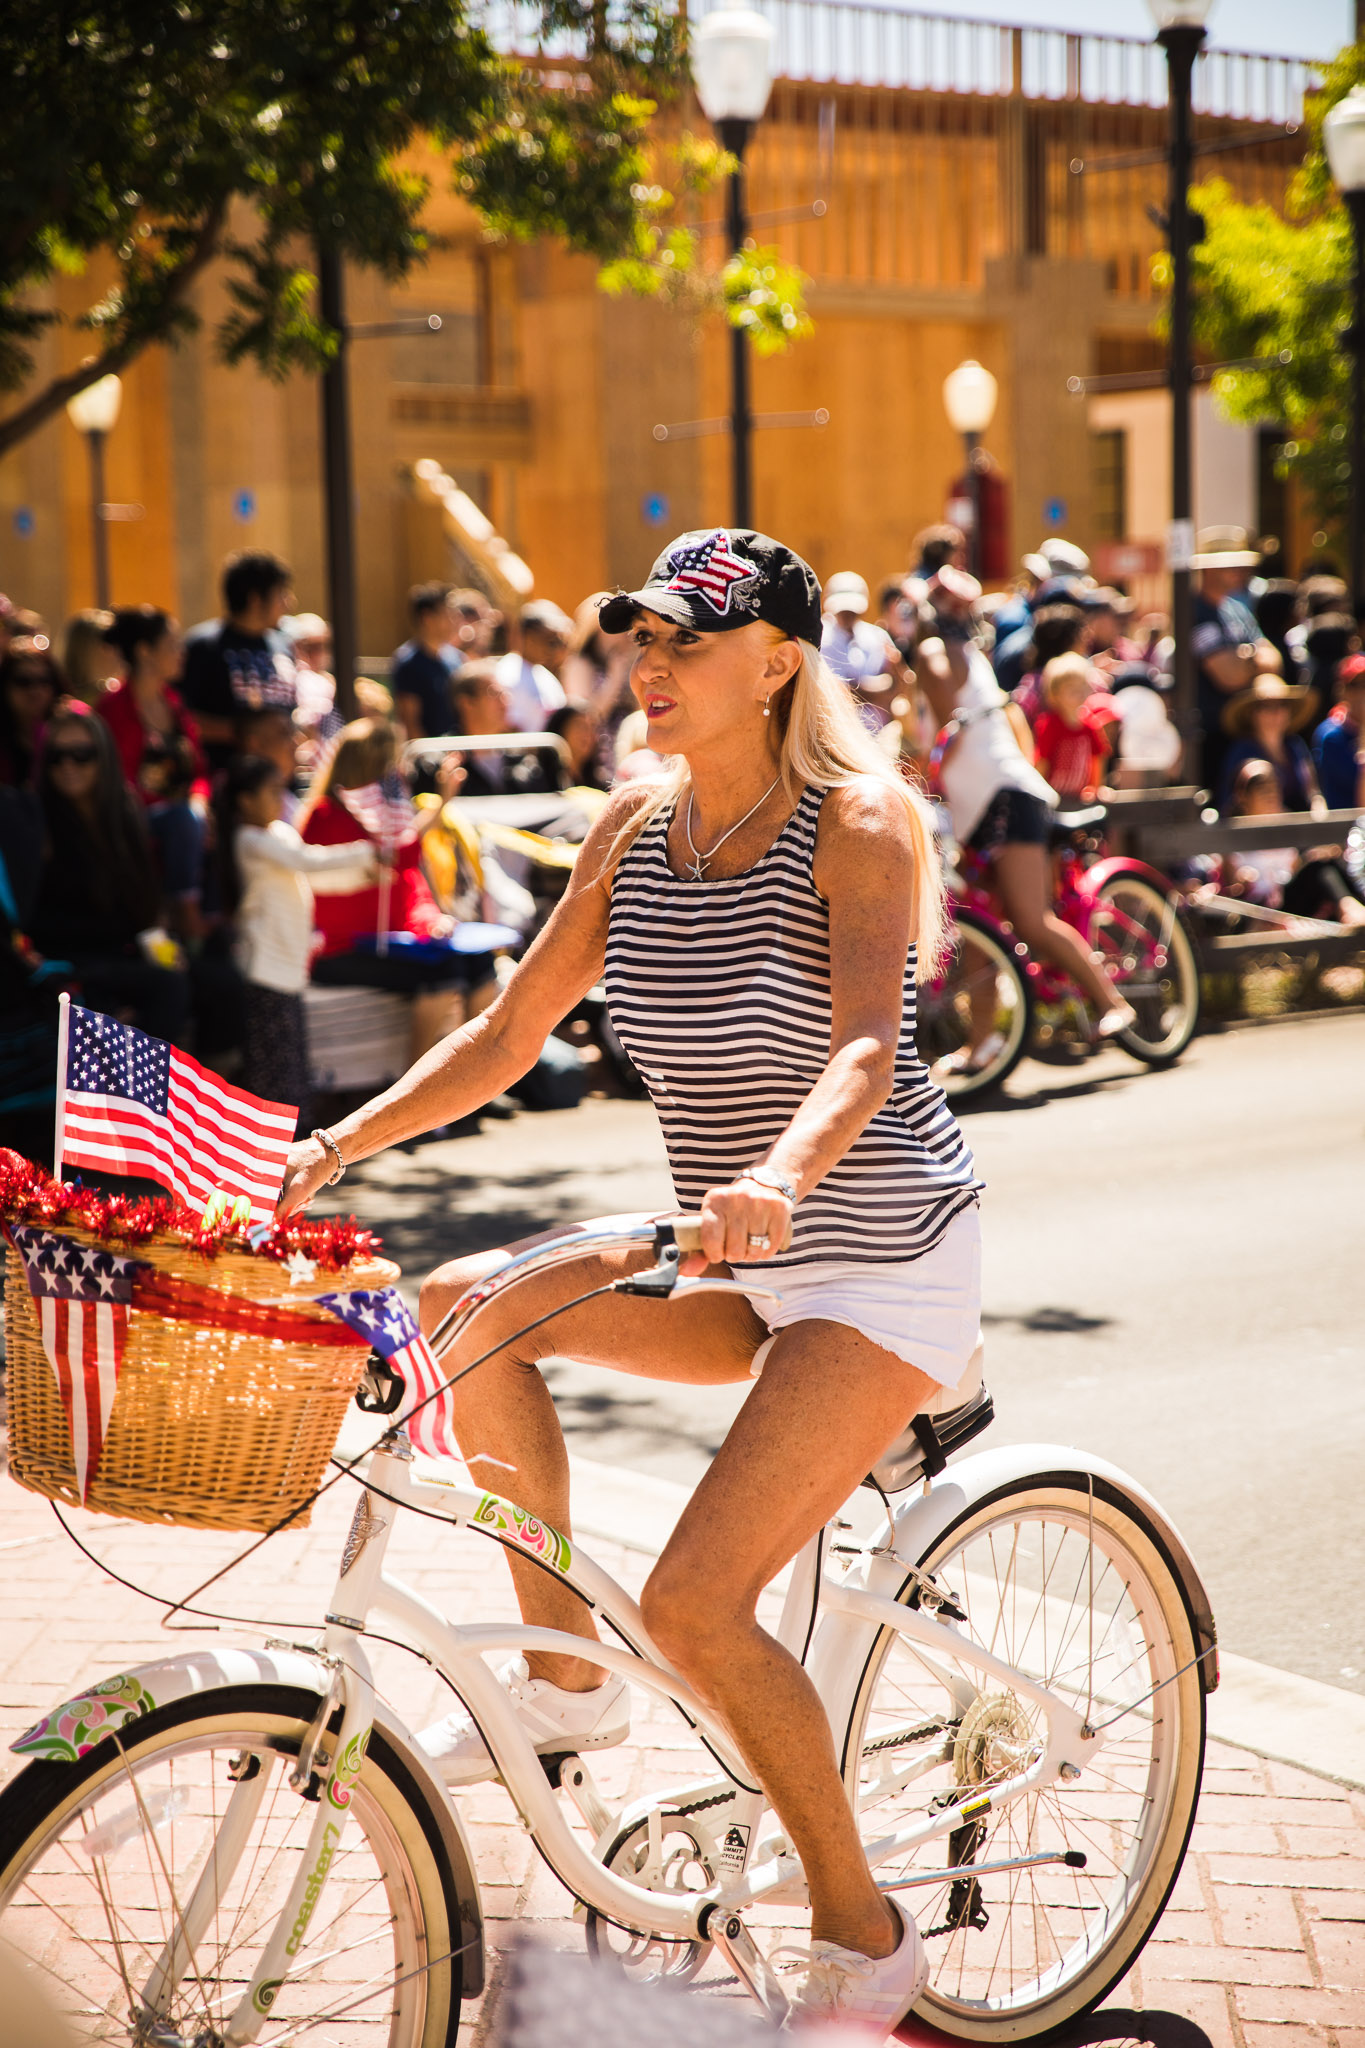 Archer_Inspired_Photography_Morgan_Hill_California_4th_of_july_parade-110.jpg